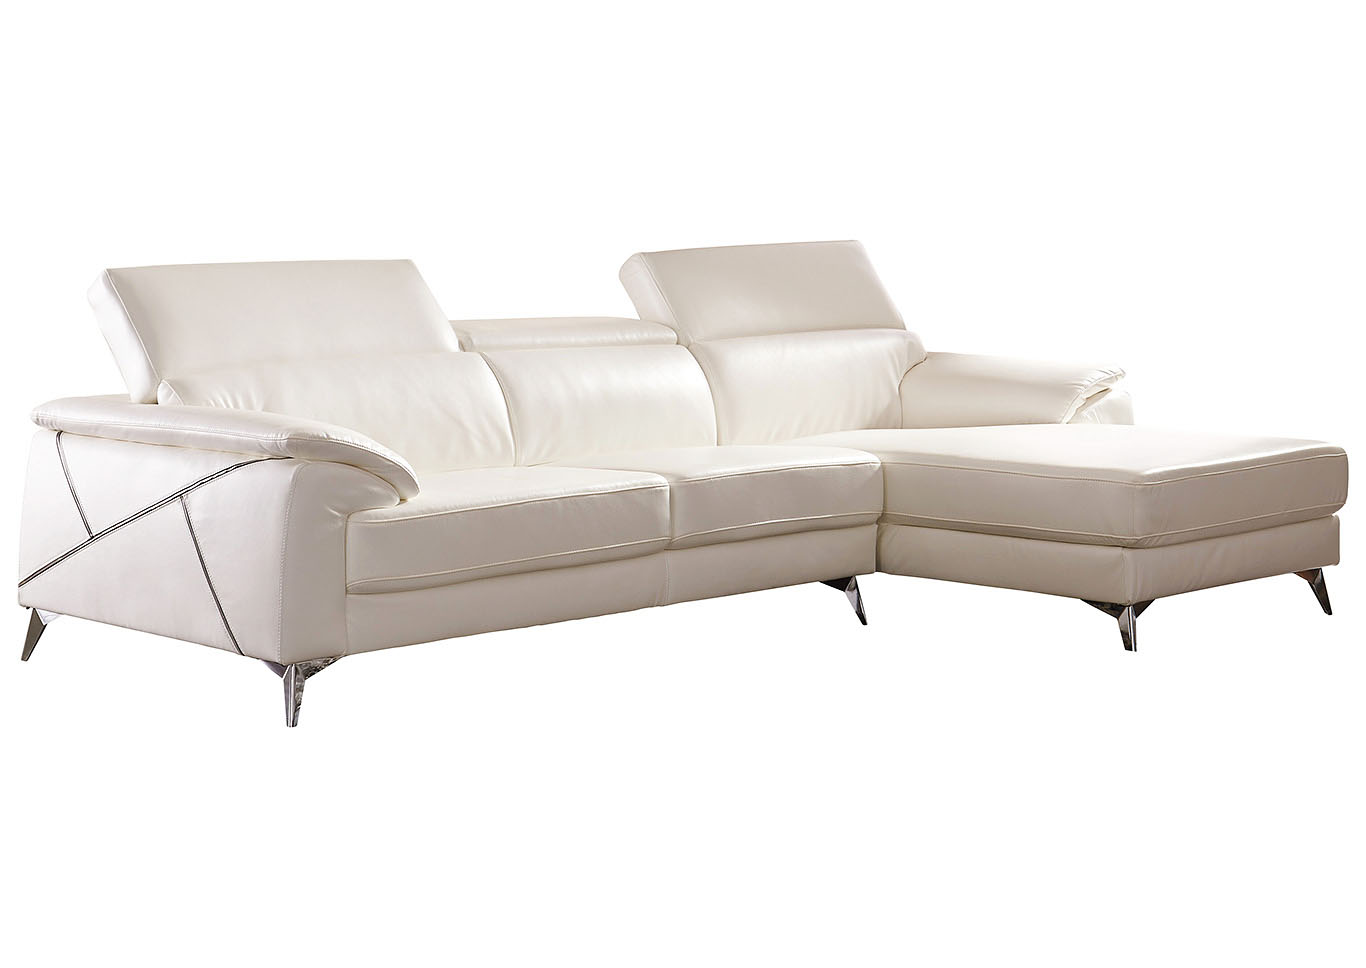 Tindell White Left Facing Loveseat Chaise Sectional,Signature Design By Ashley